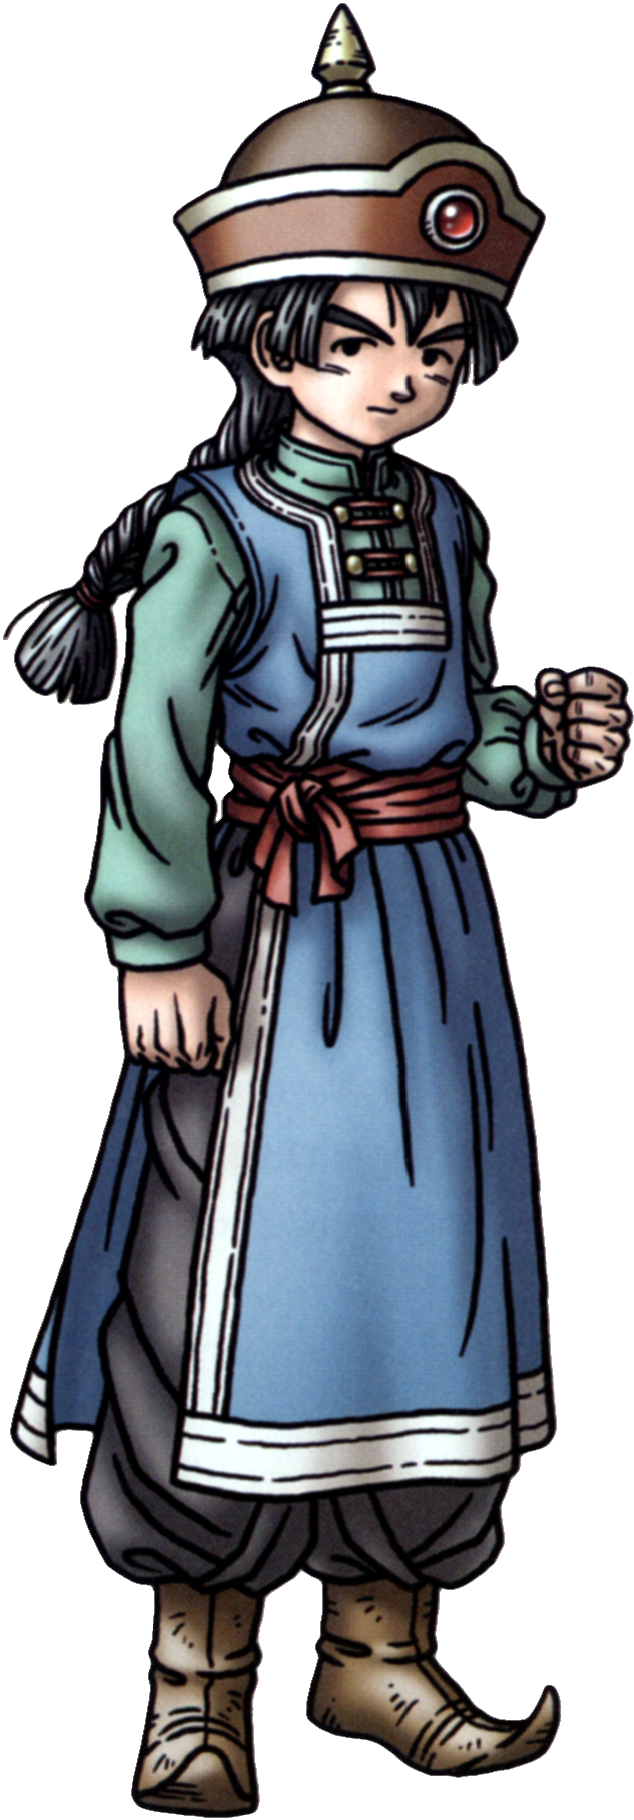 Dragon Quest Wikipedia: List Of Minor Characters In Dragon Quest IX